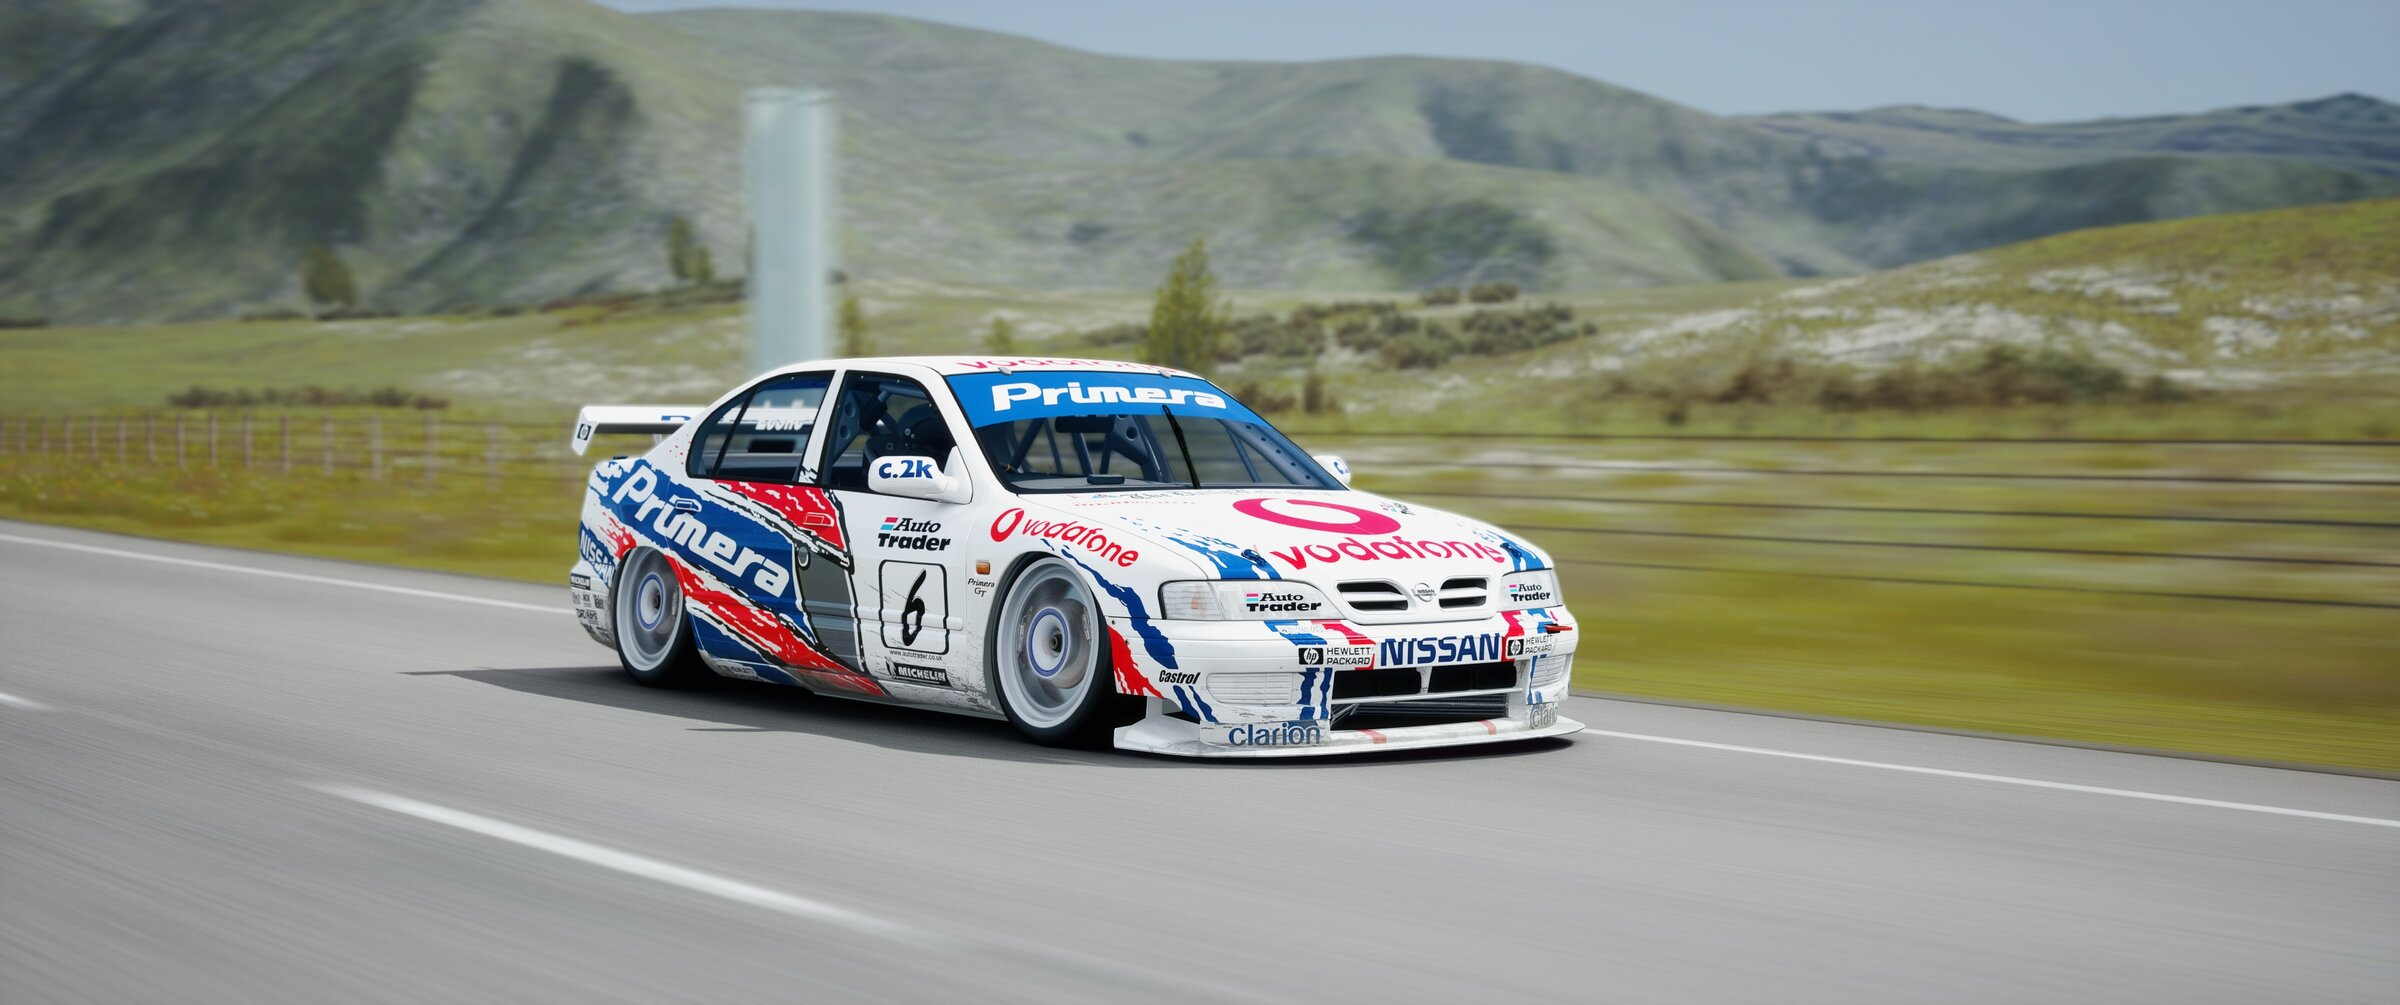 Screenshot_pm3dm_nissan_primera_btcc_ks_highlands_19-6-120-12-21-9.jpg